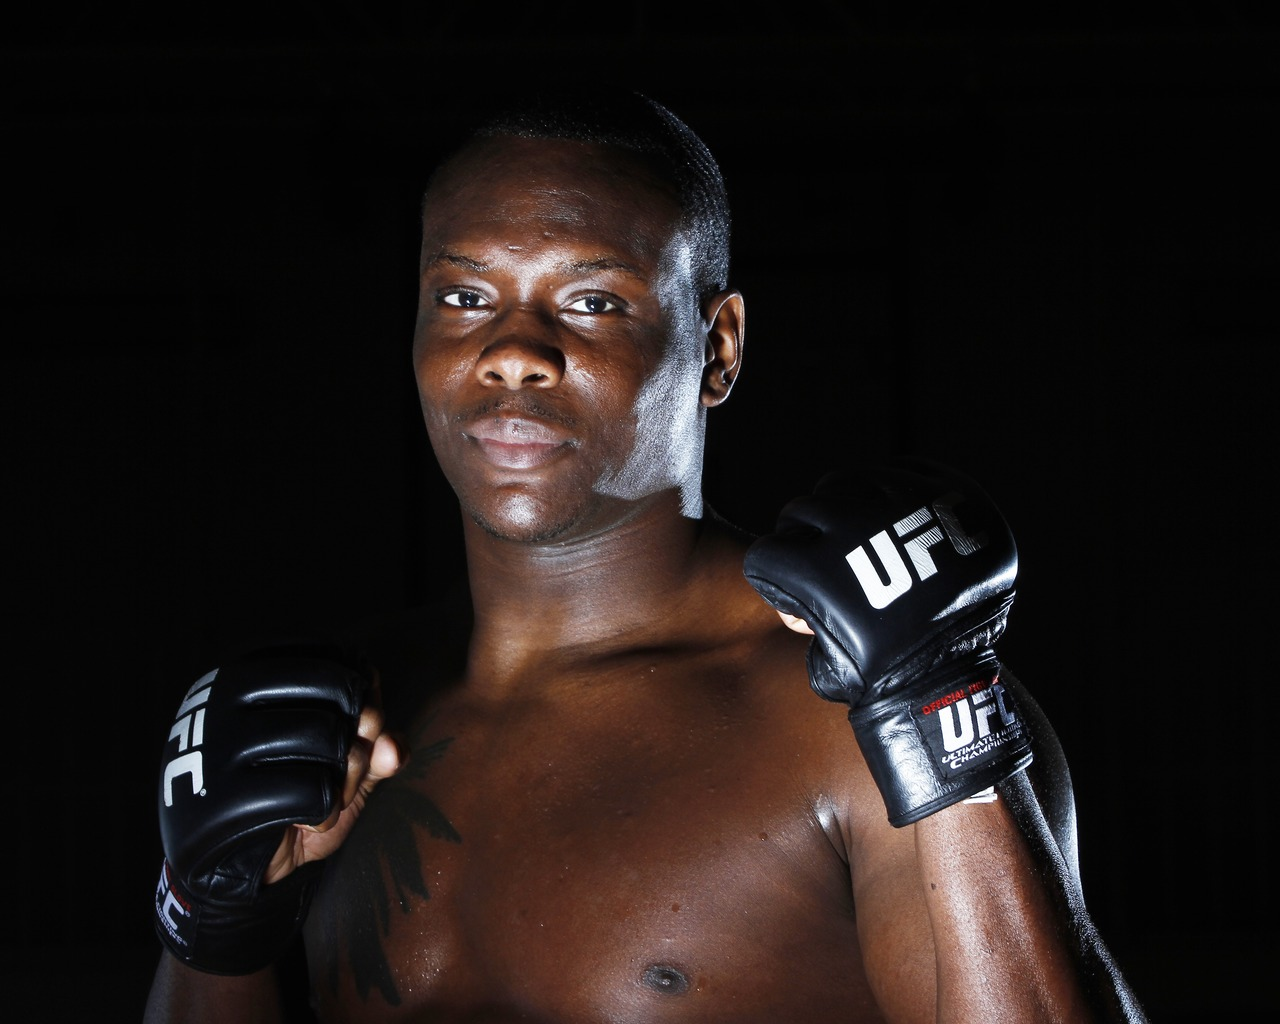 Download wallpaper 1280x1024 ovince saint preux ultimate fighting 1280x1024